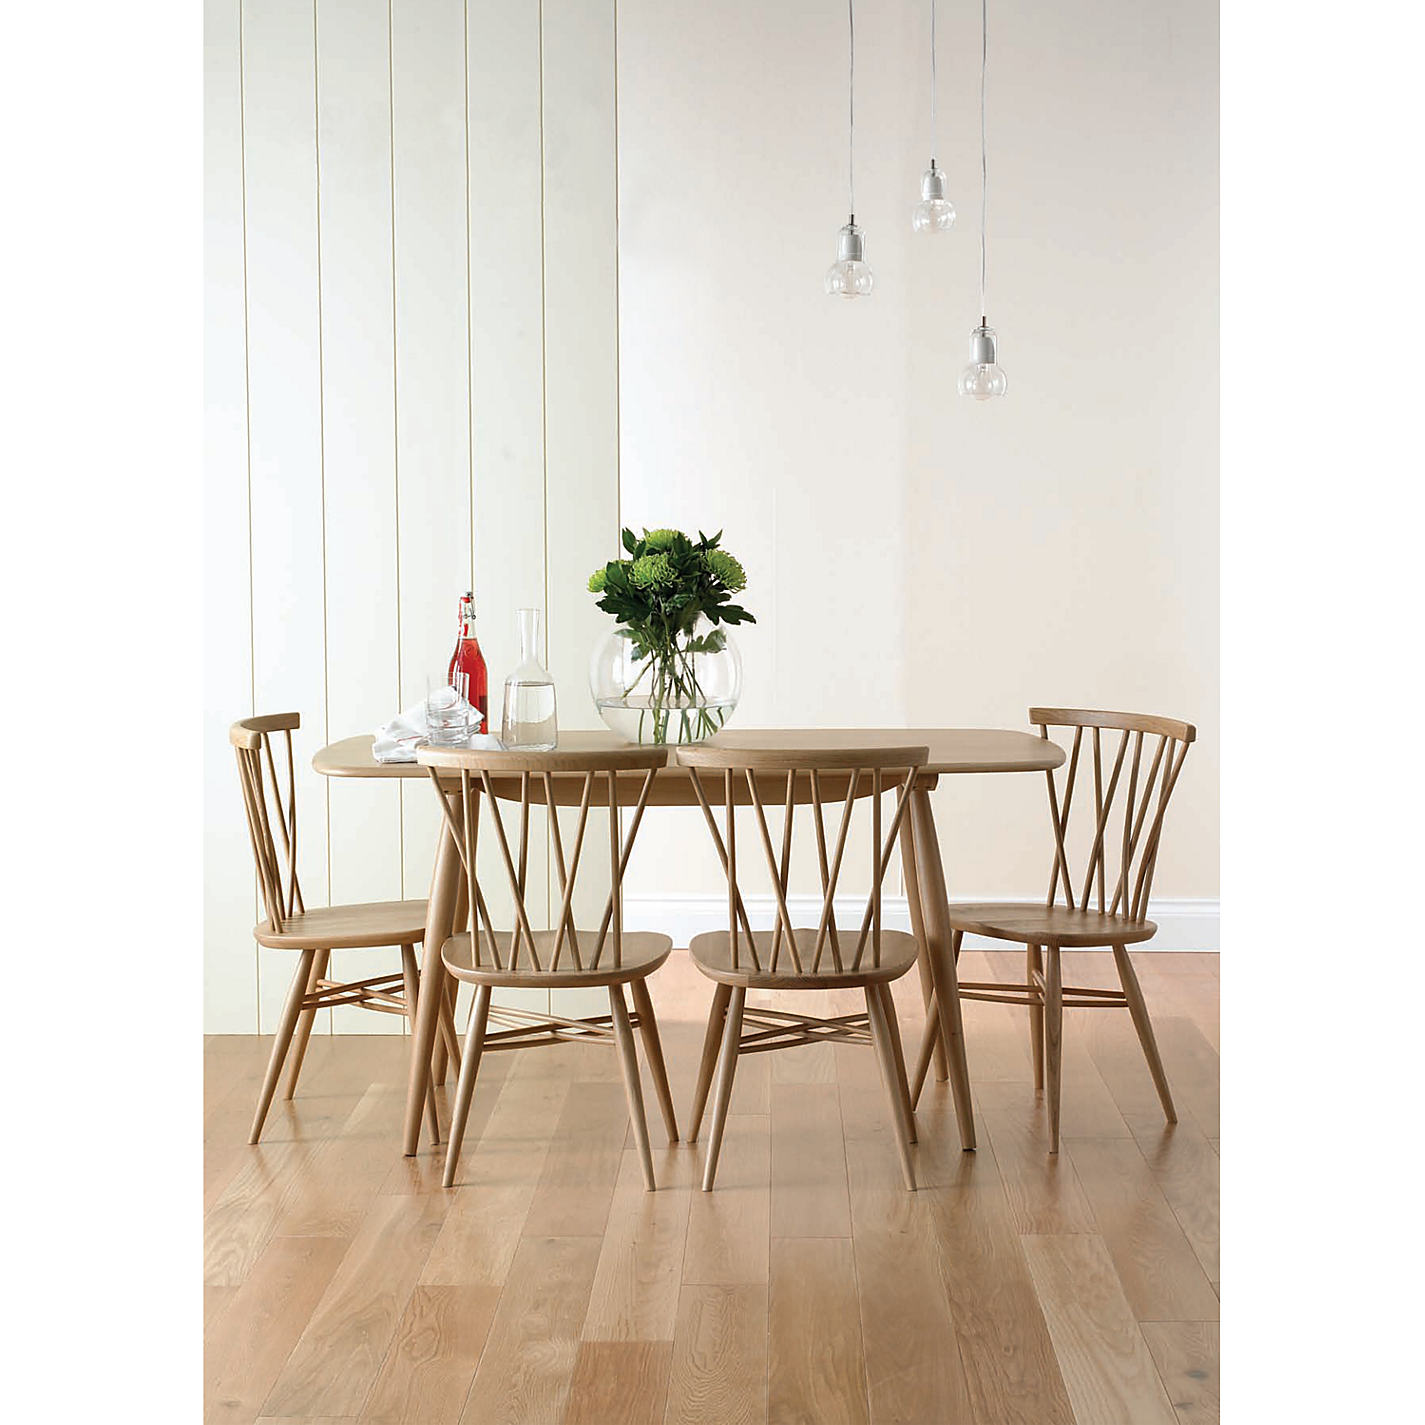 Dining Tables And Chairs John Lewis Image Collections